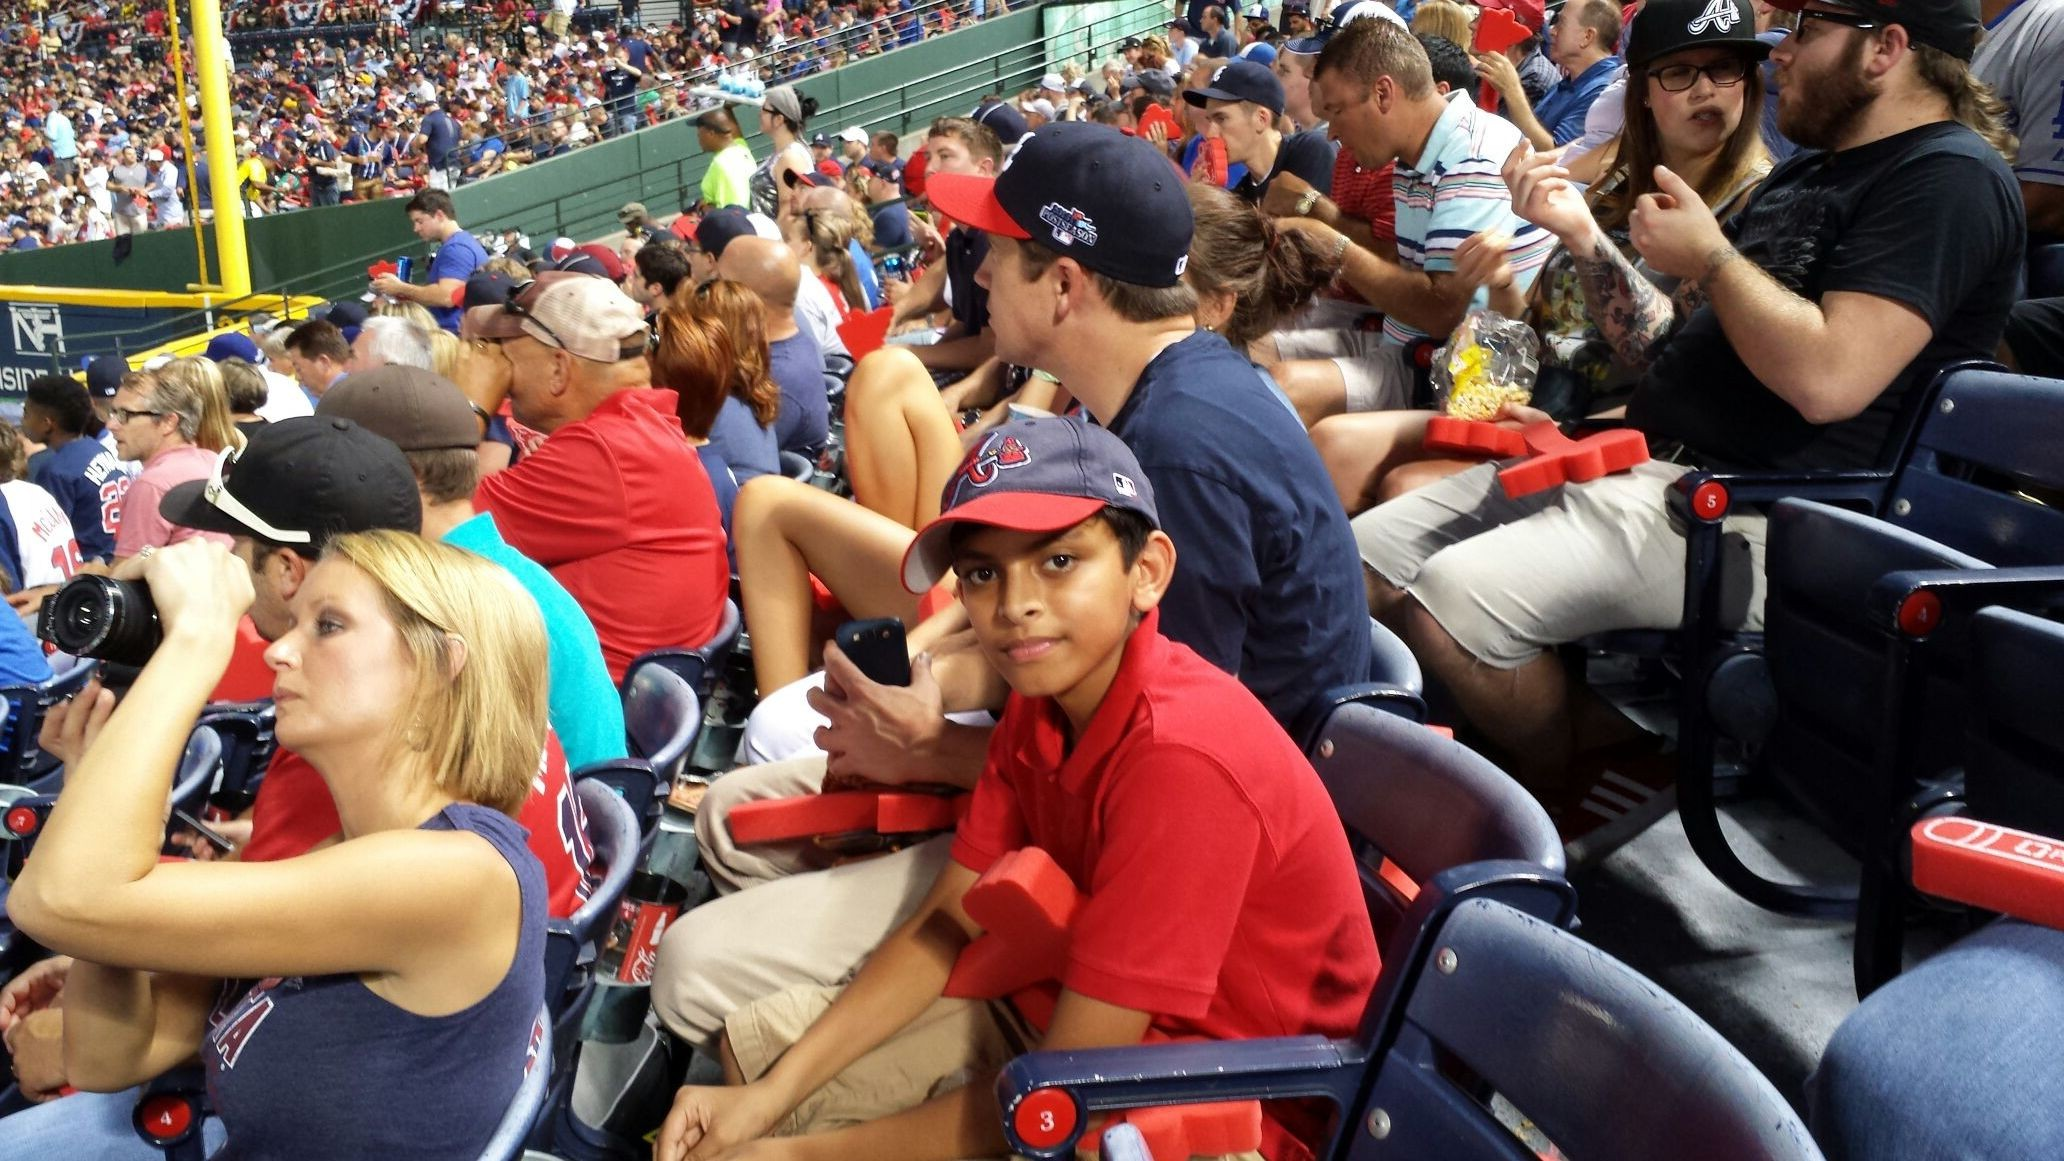 Eashan's first play off braves game